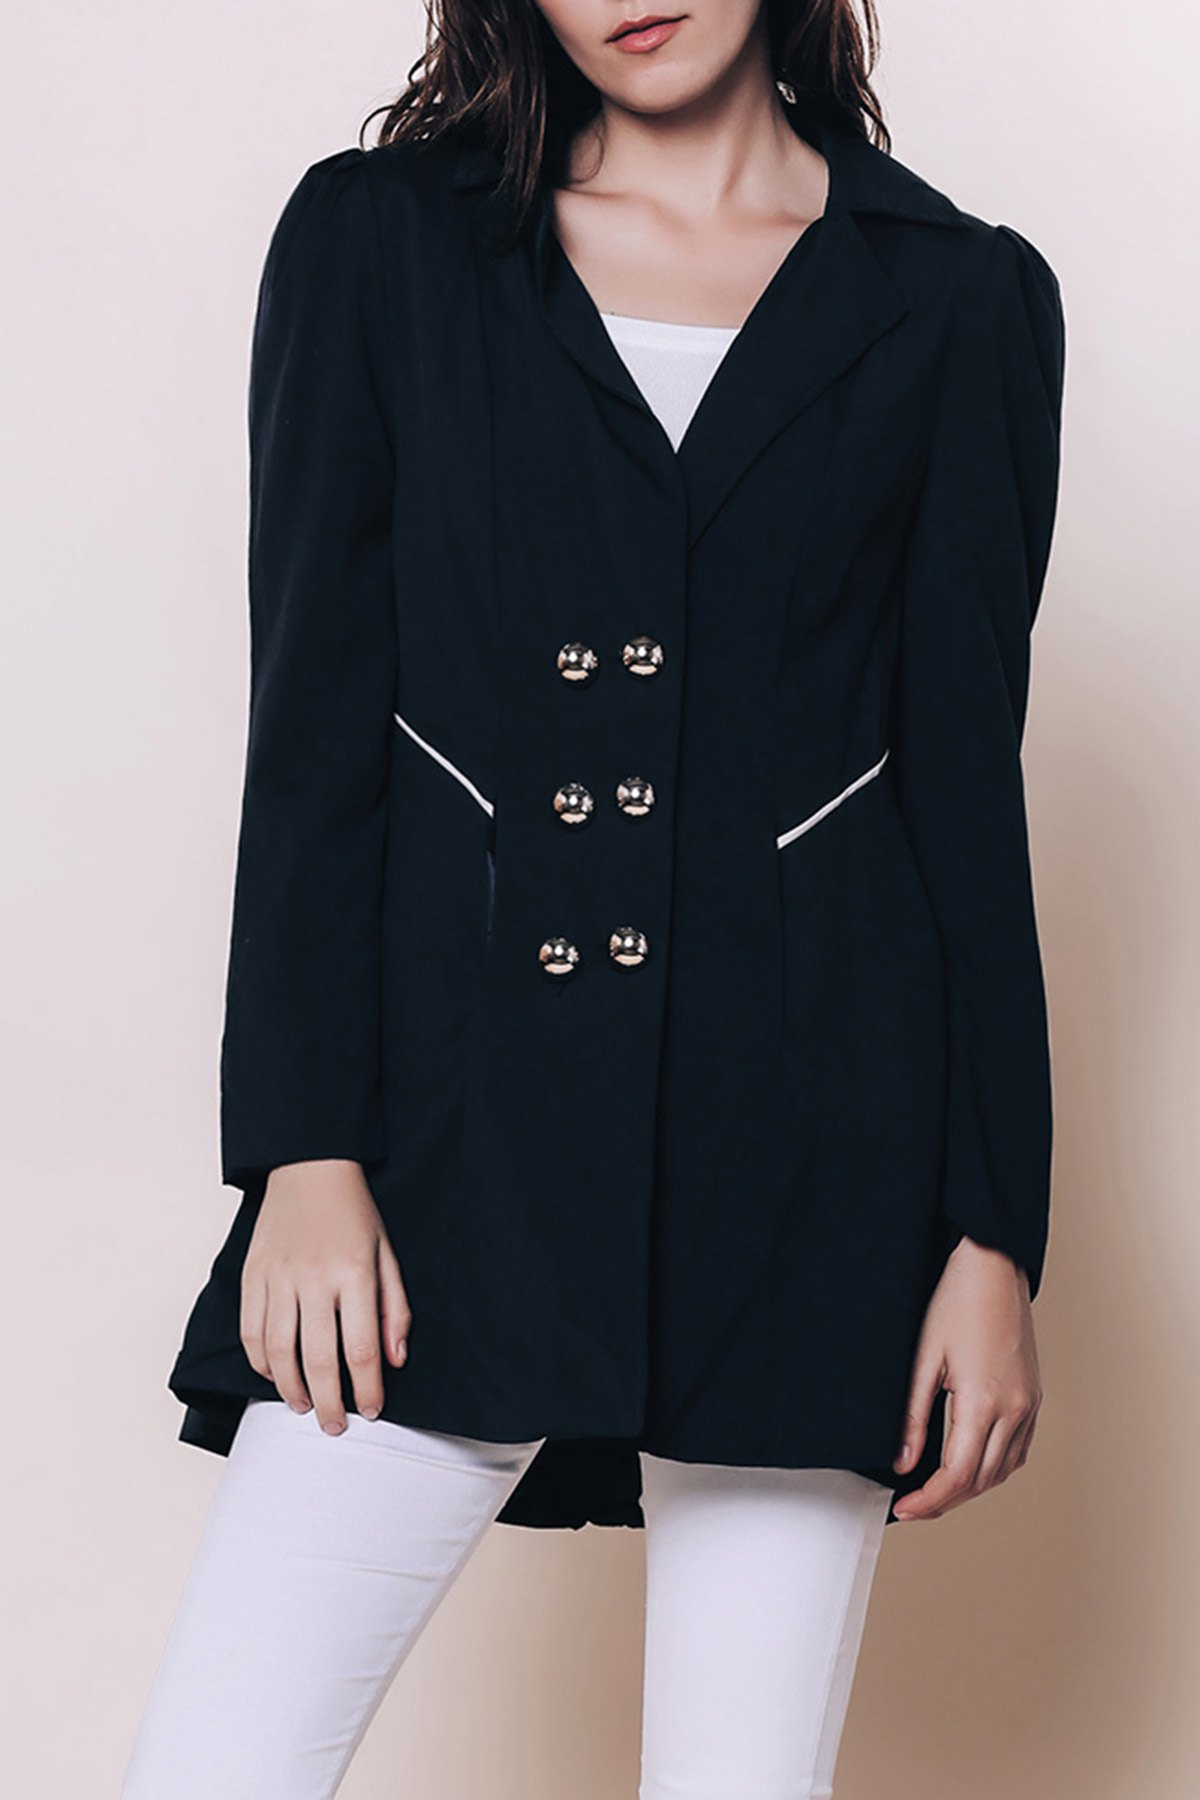 Discount Elegant Turn-Down Collar Double Breasted Long Sleeve Trench Coat For Women